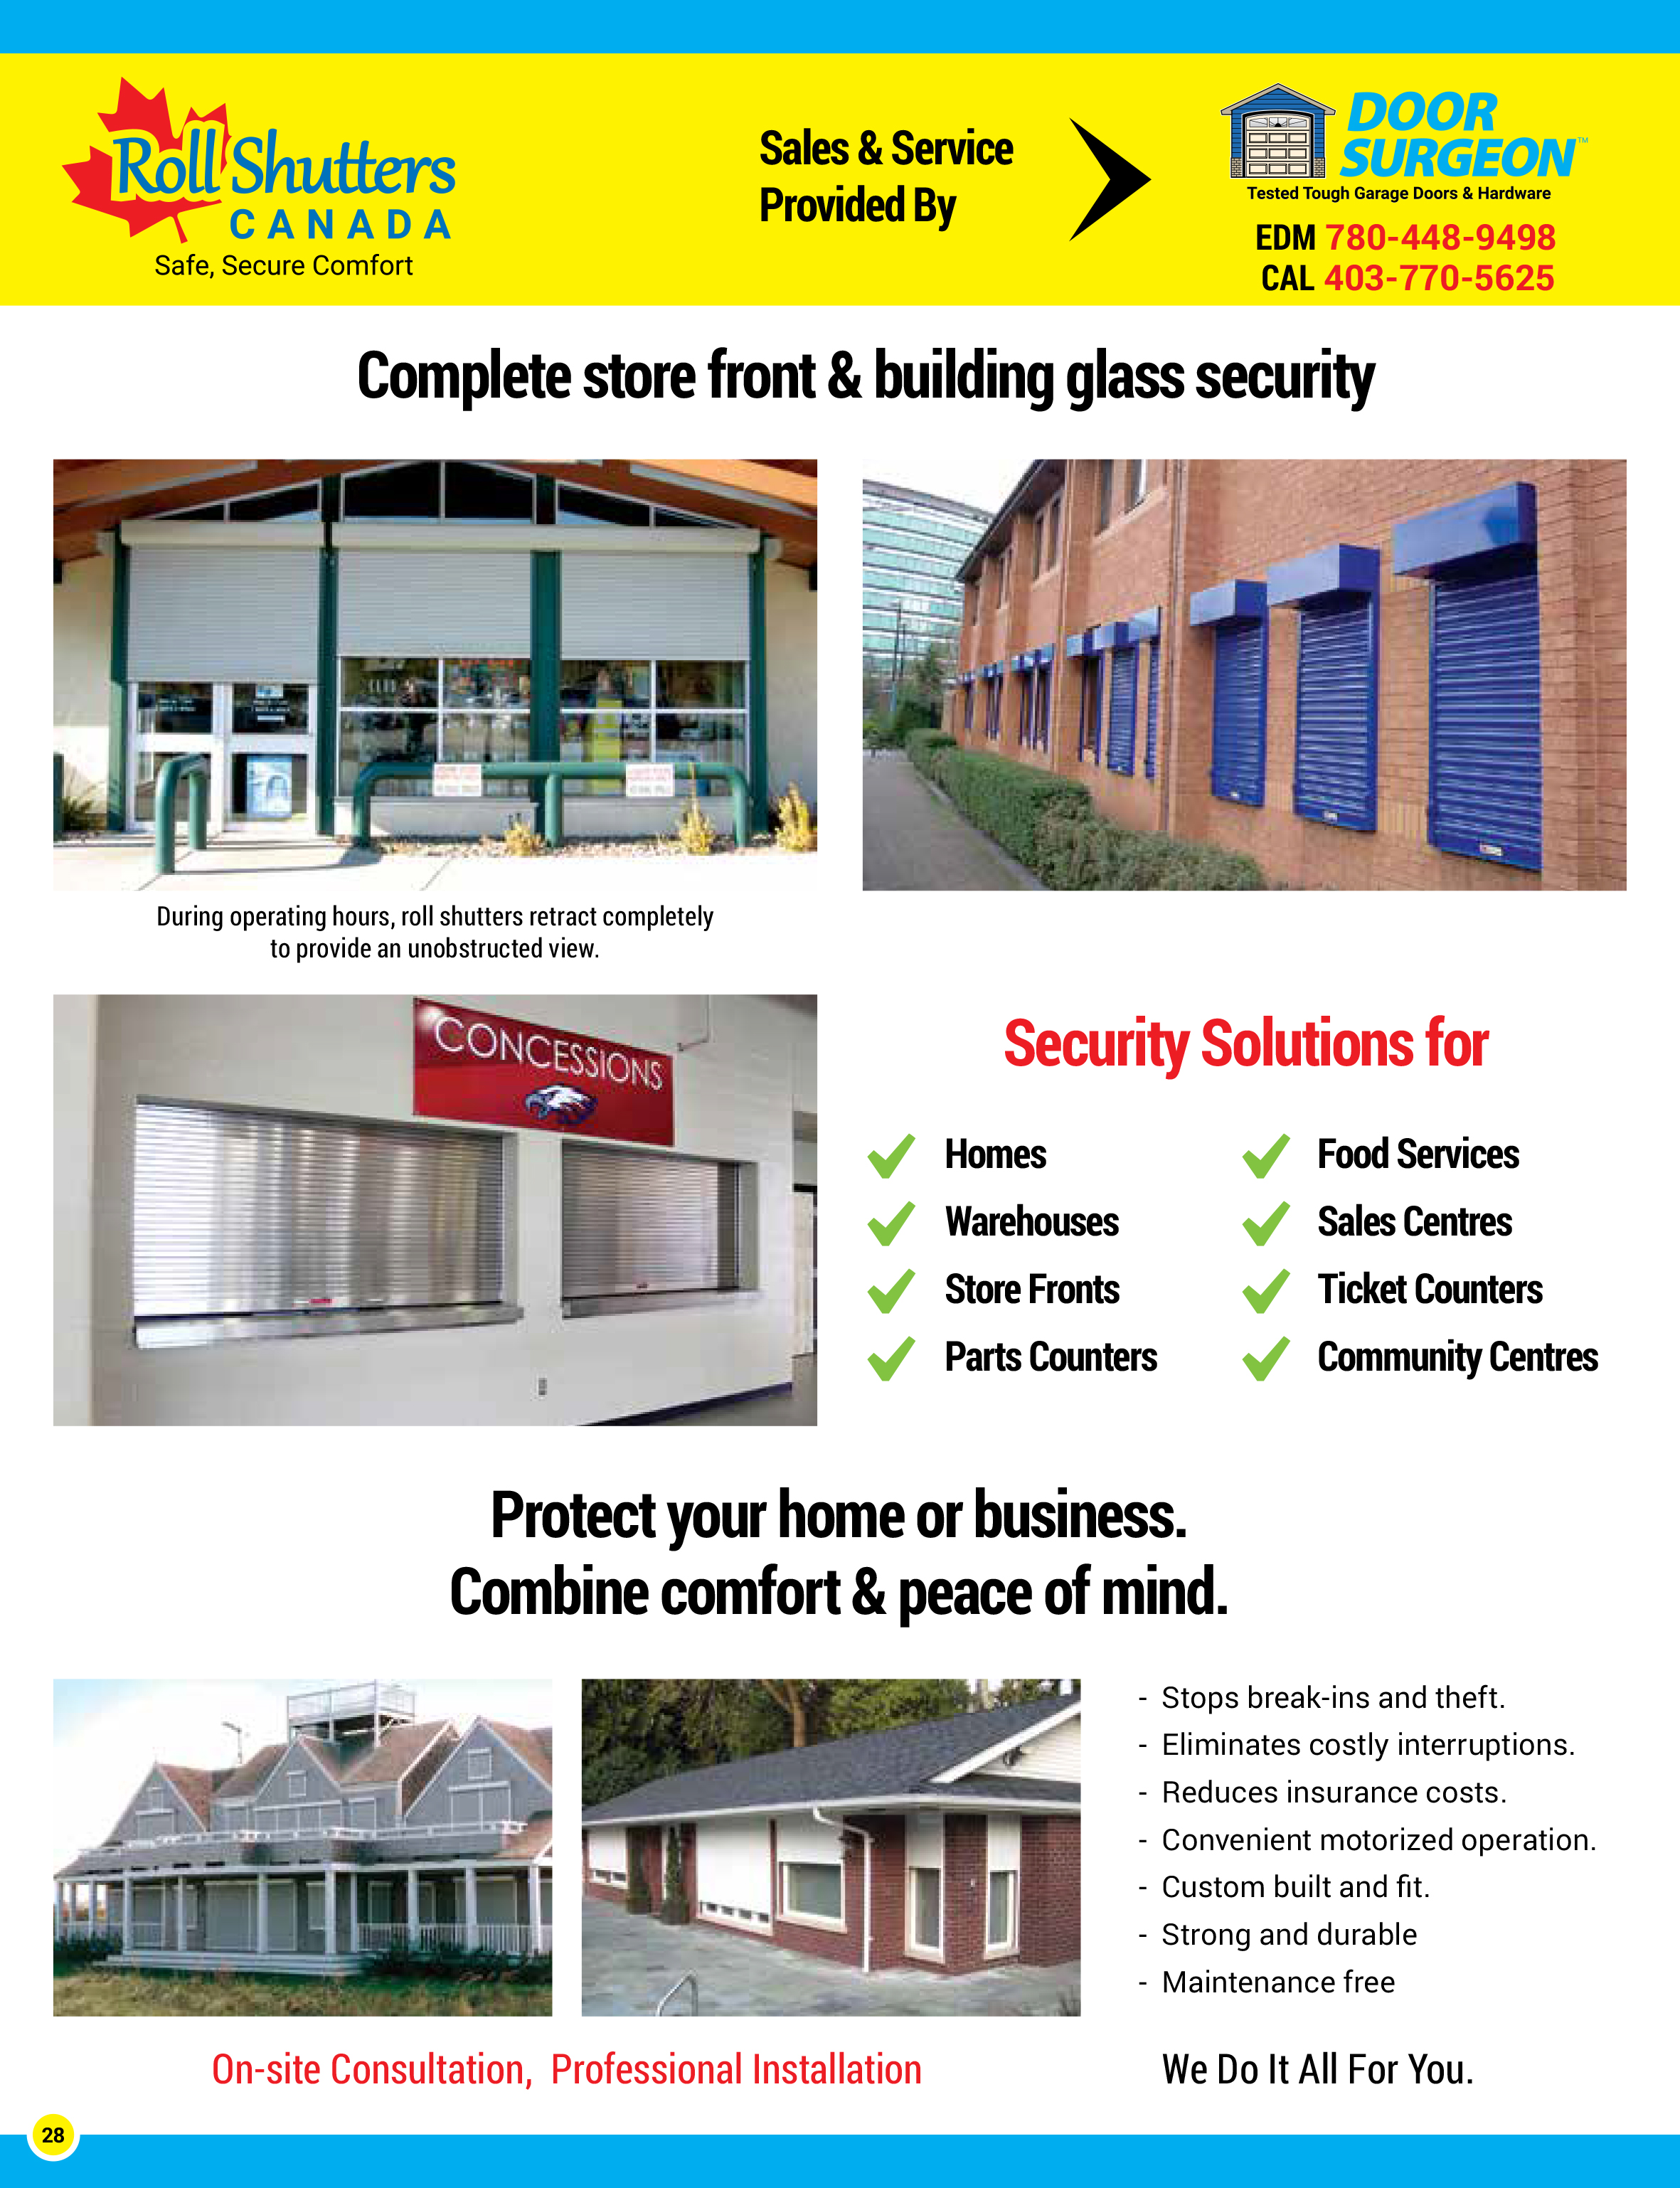 Complete store-front and building glass security provided with Roll Shutters.